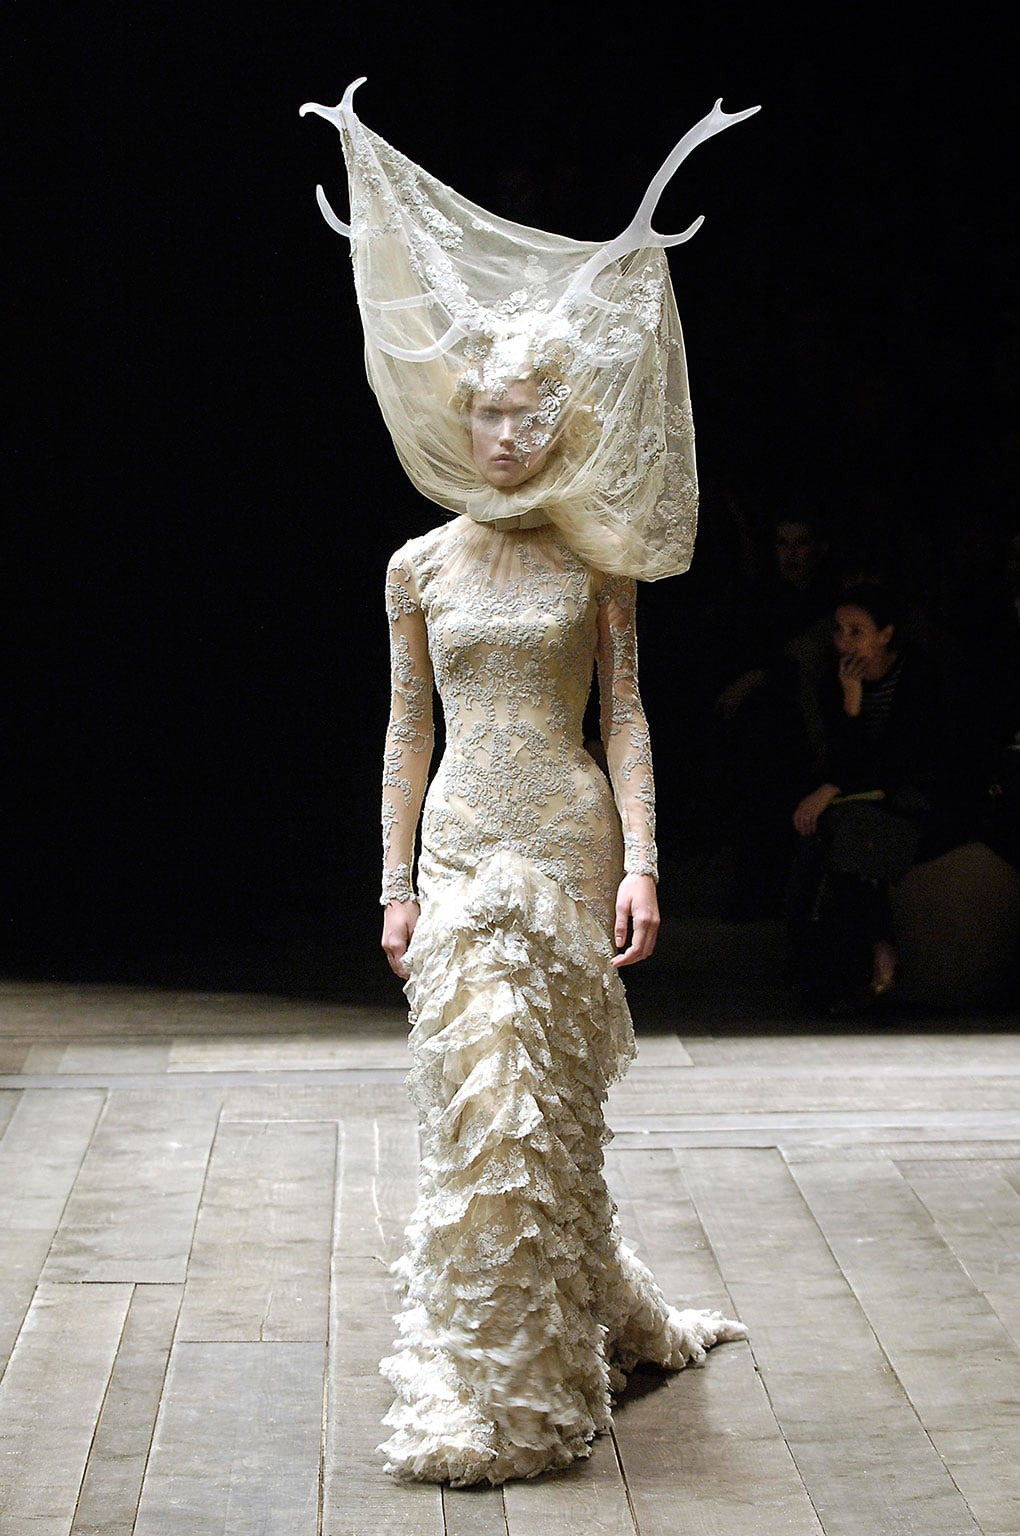 Alexander McQueen, Tulle and lace dress with veil and antlers Widows of Culloden, A/W 2006–07